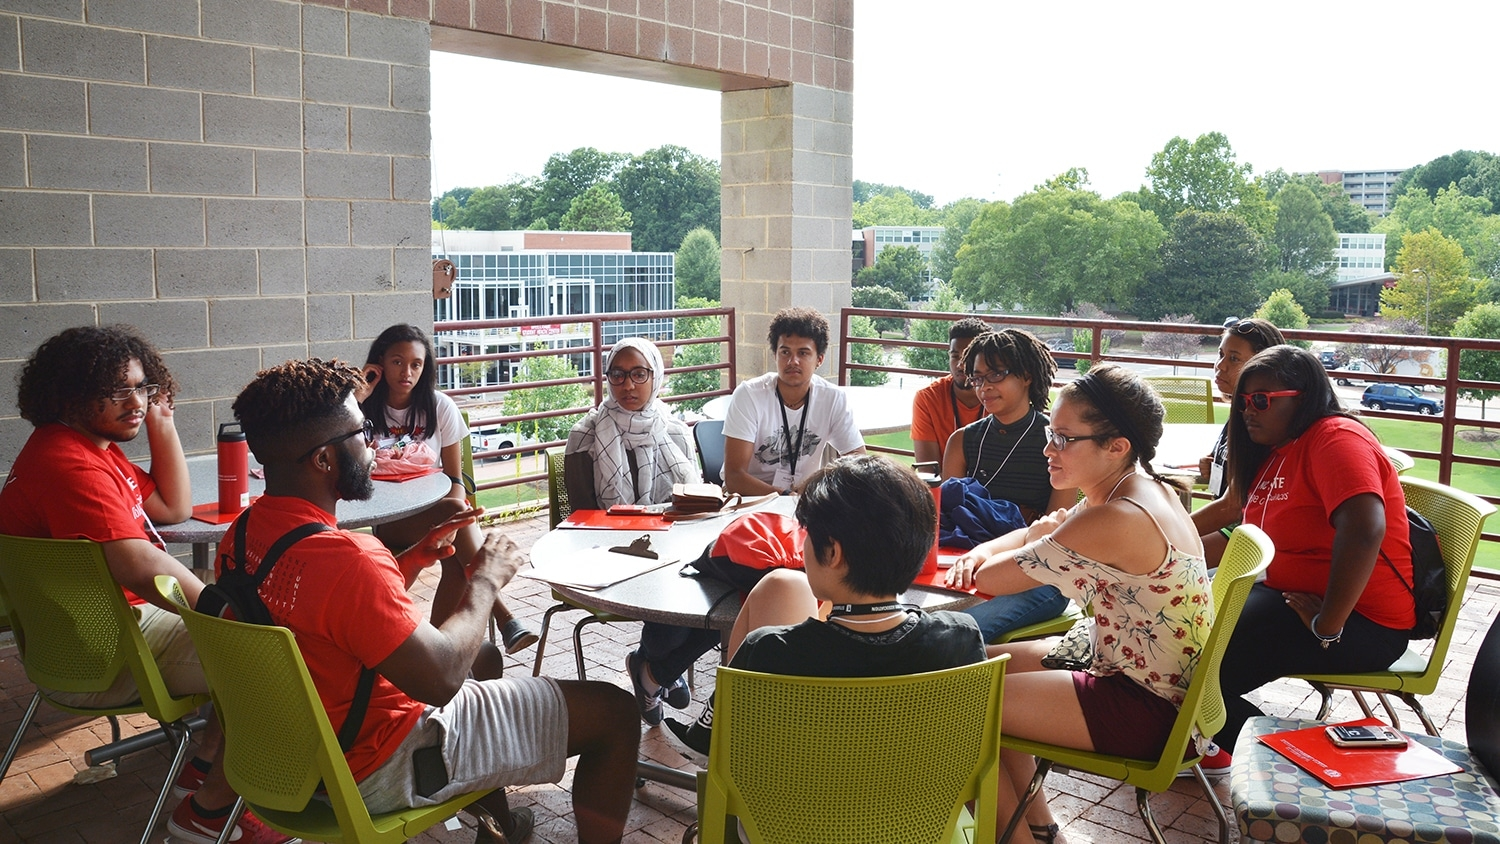 Students sitting around a table participate in a discussion session during the Symposium for Multicultural Scholars